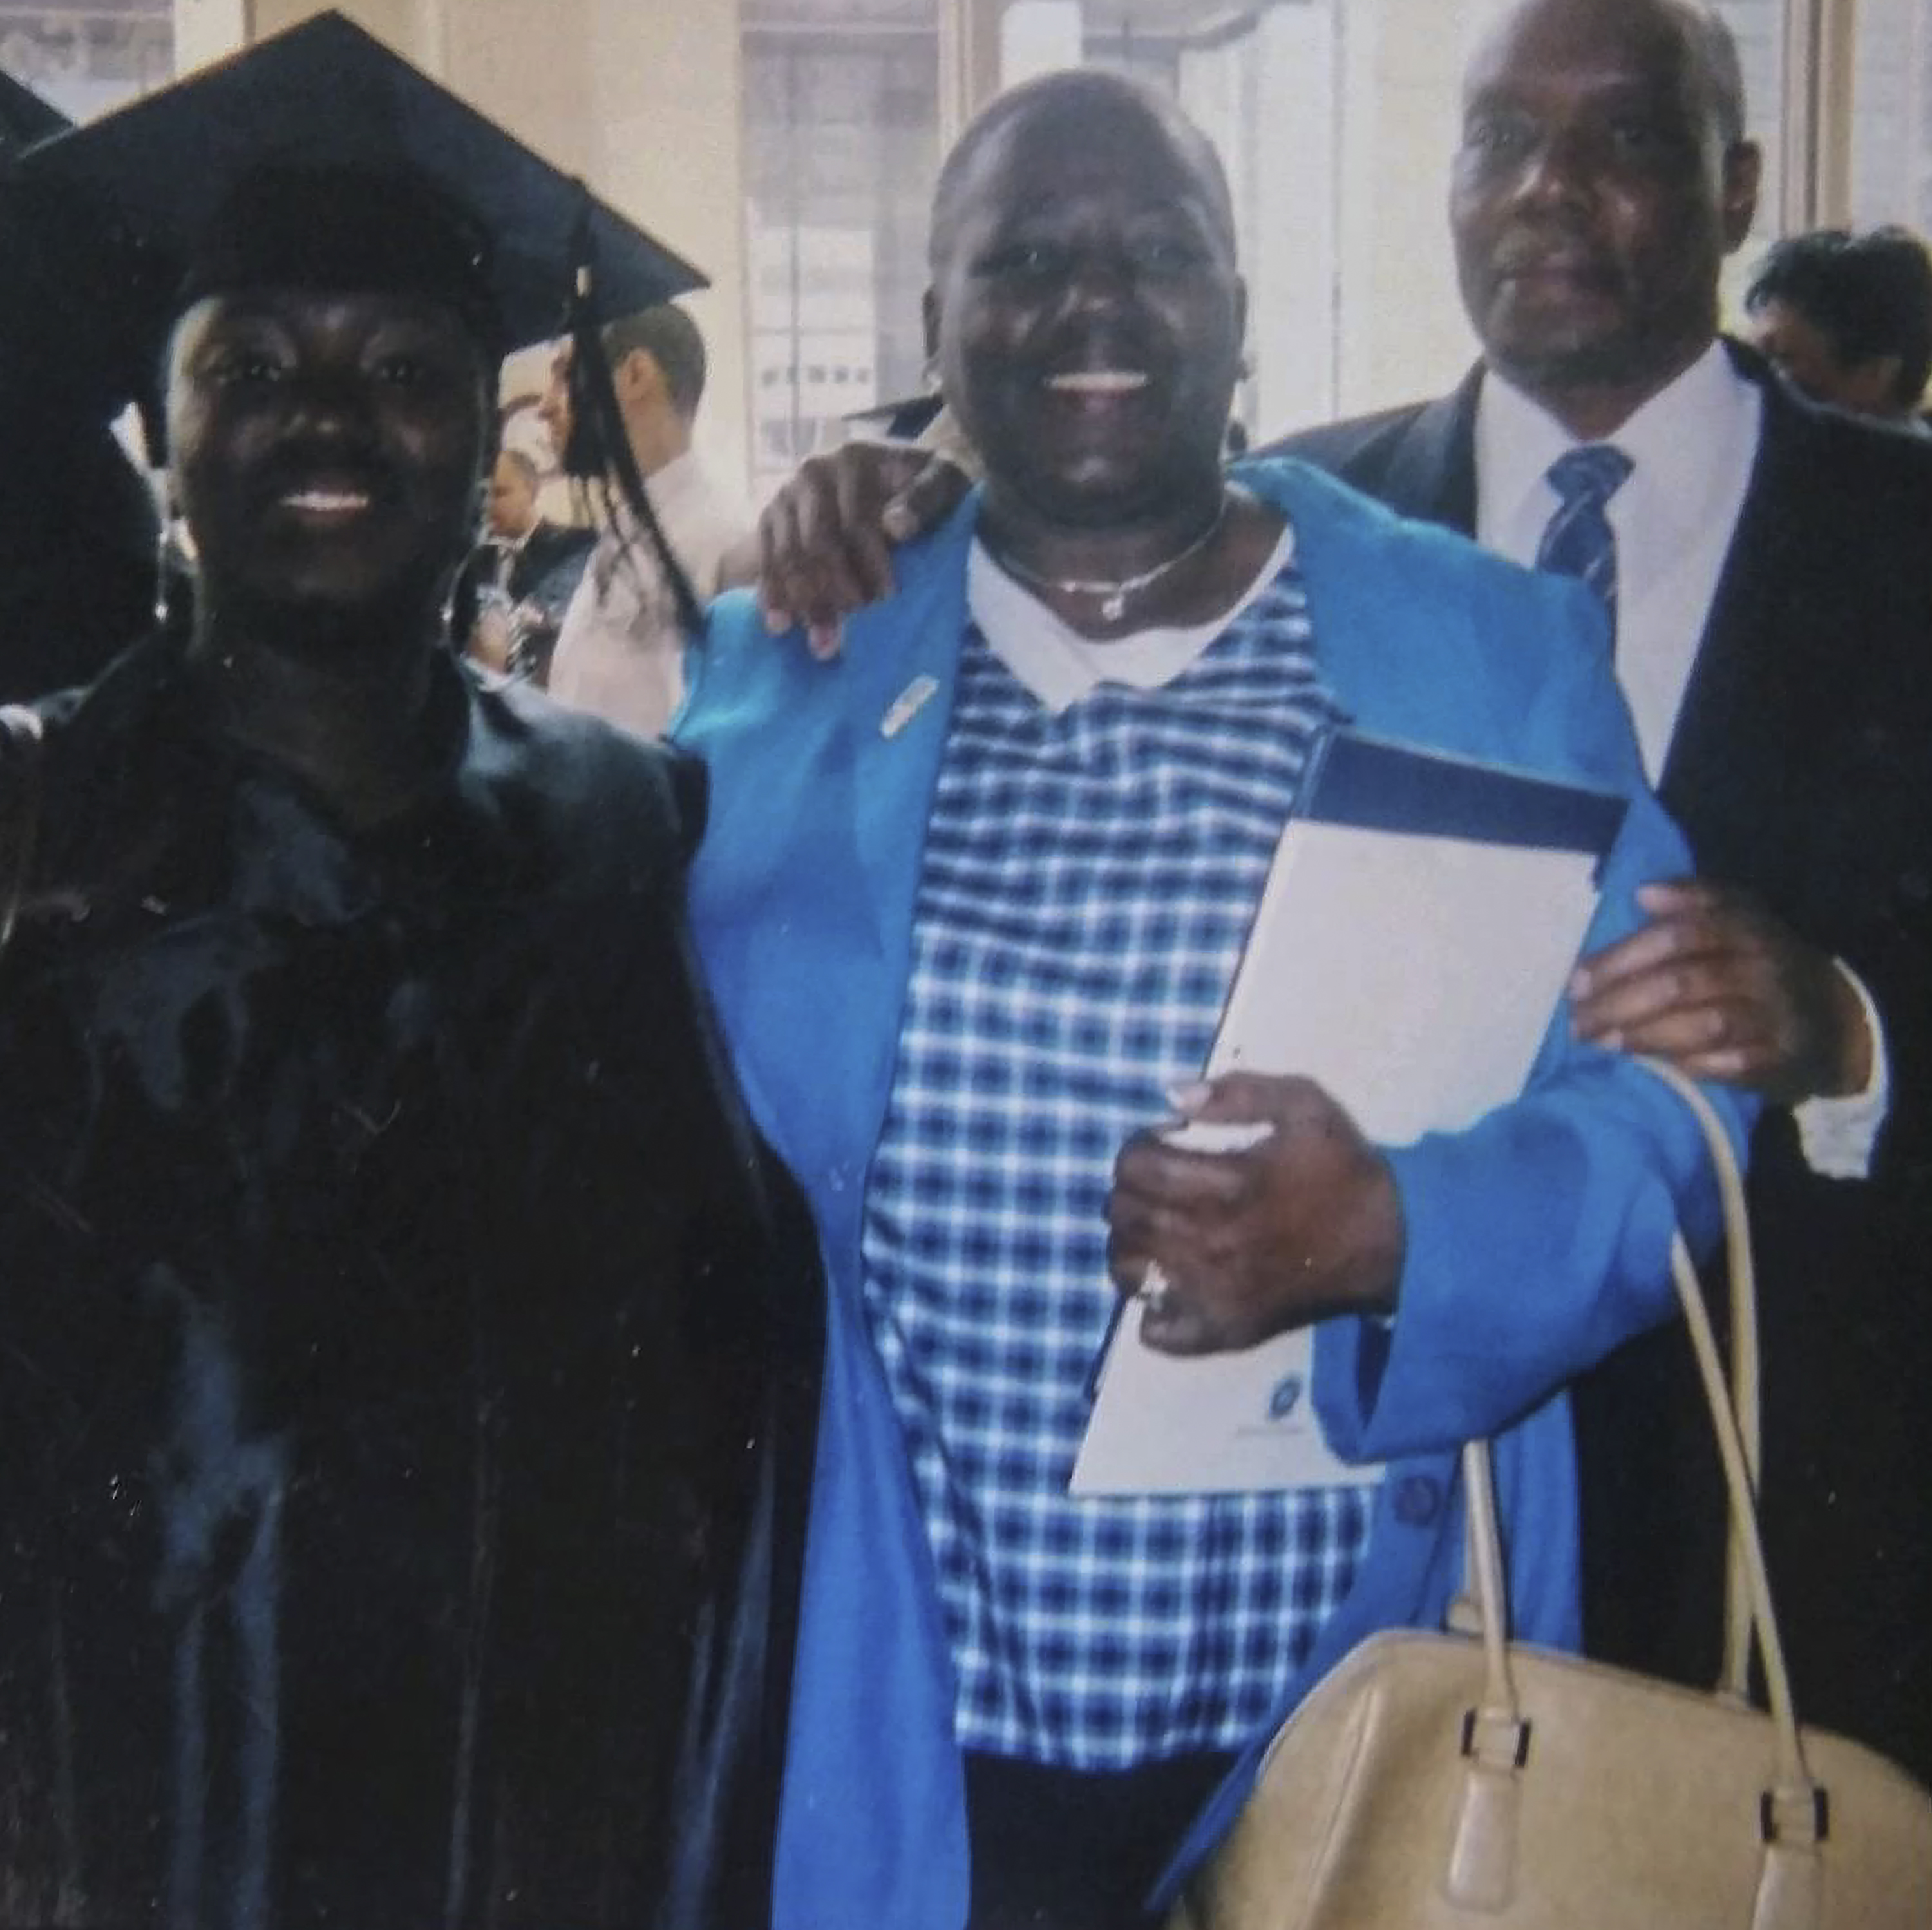 Marisa Taylor with her parents, Laura Taylor Howell and Clifton Howell.